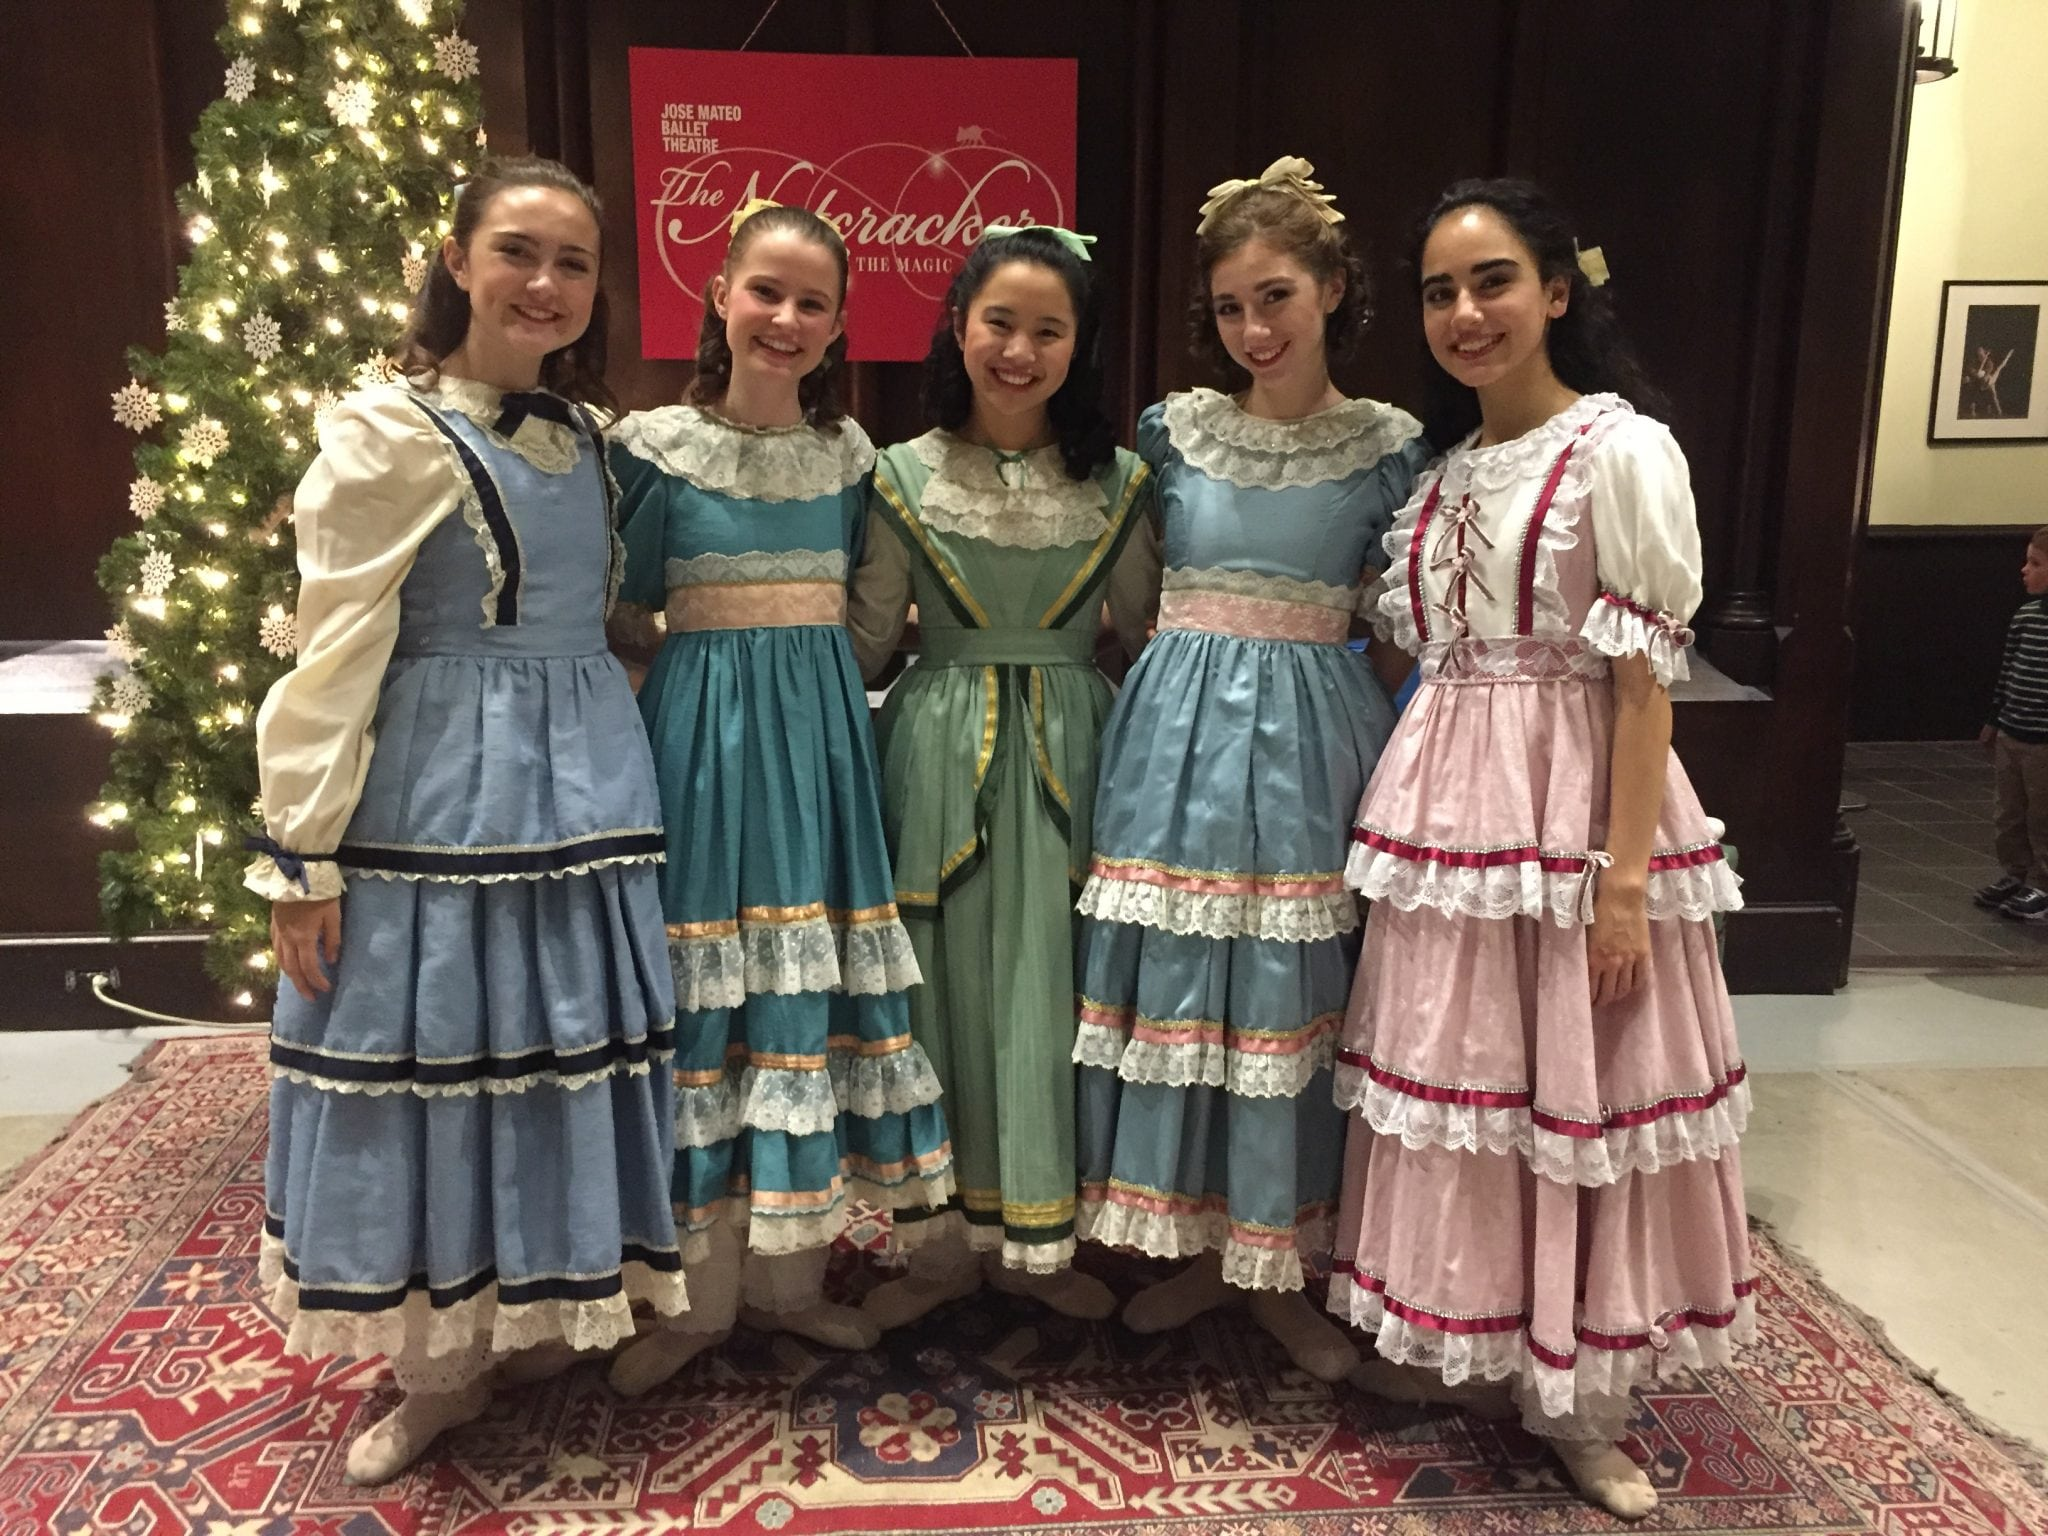 The Claras: from left to right: Olivia Hynes, 15, of Saugus; Ashley Watts, 17, of Wellesley; Amy Chan, 16, of Cambridge; Cecilia Zevallos, 17, of Somerville; and Samin Charepoo, 17, of Quincy . Ashley will dance as Clara November 26 and December 3 at 7; December 10 and 17 at 2pm.